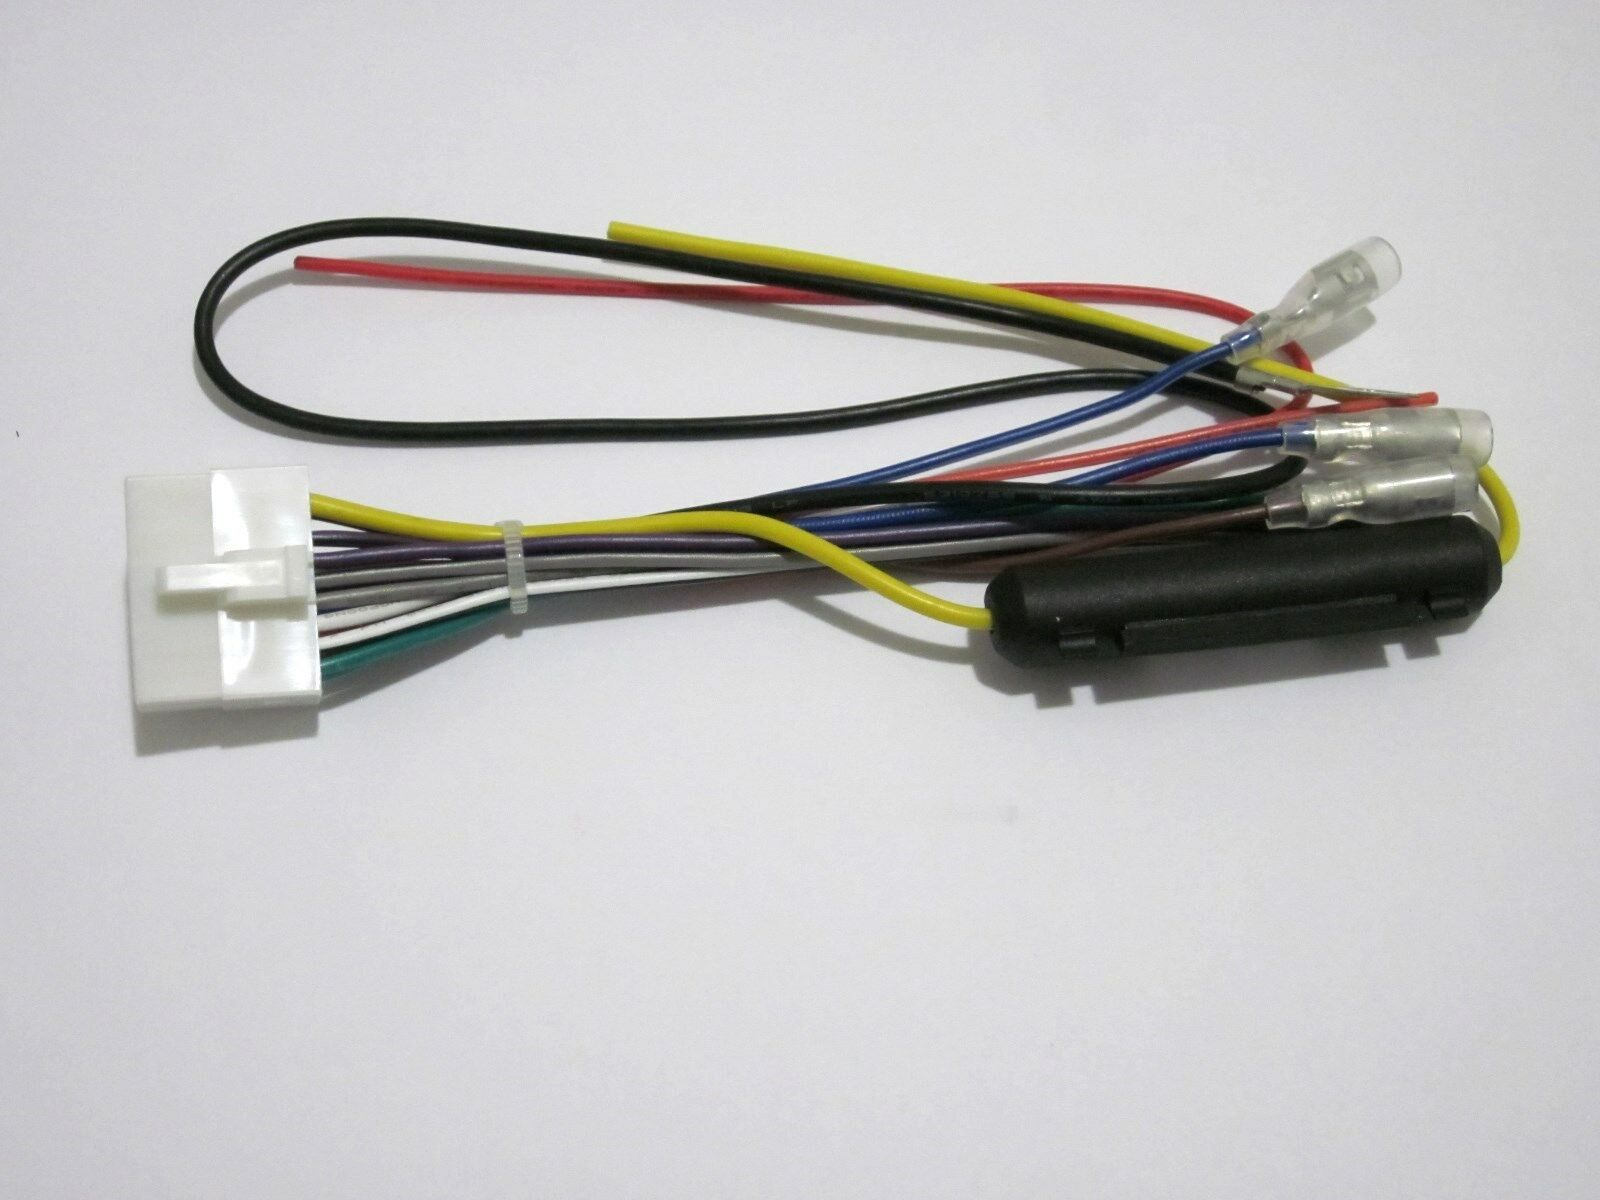 clarion eqs755 wiring diagram clarion m3170 wiring harness